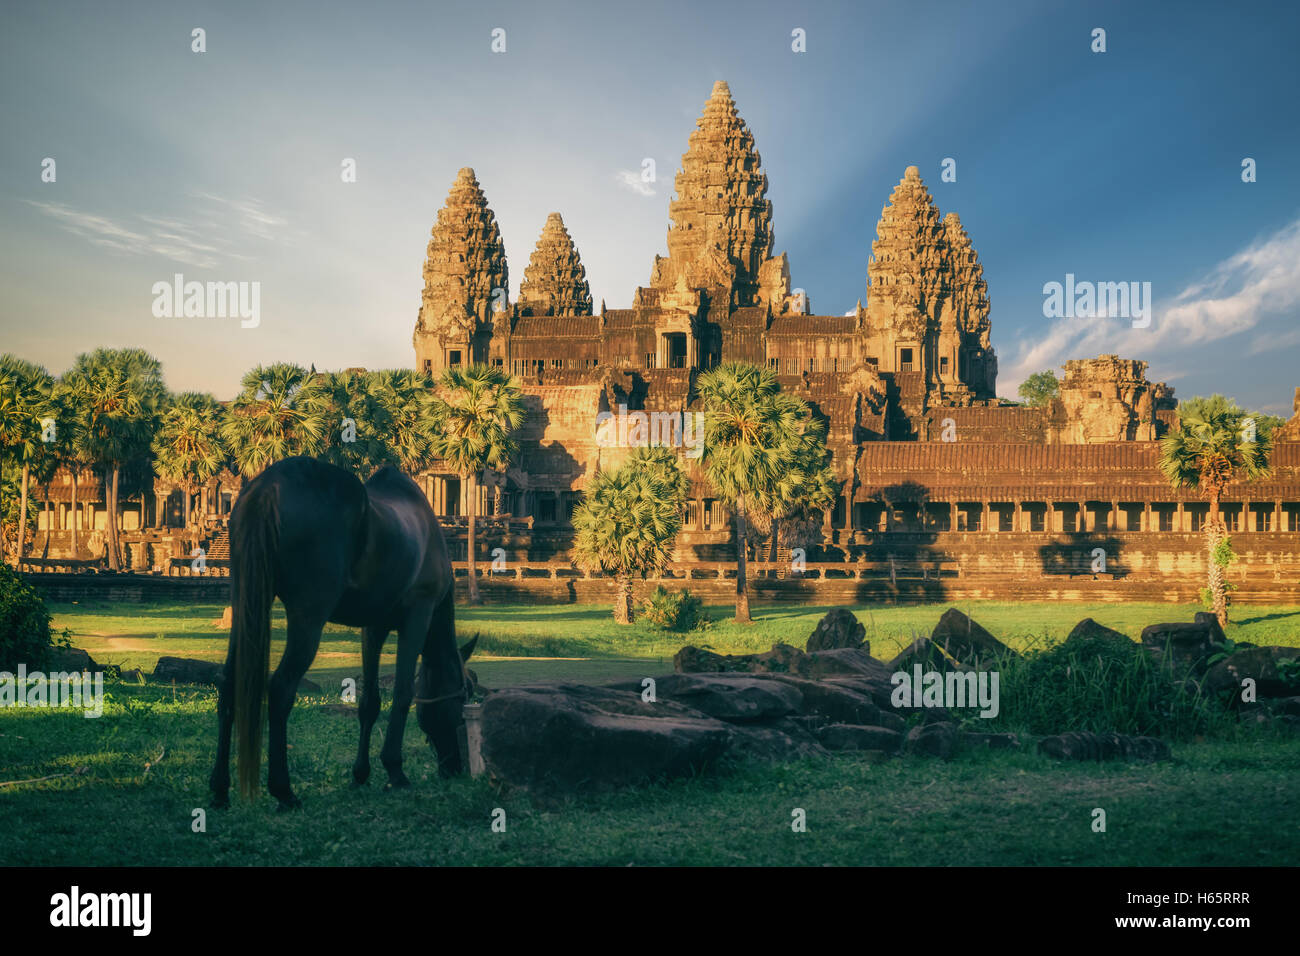 Beautiful view of Angkor Wat Temple, Cambodia, Southeast Asia - Stock Image